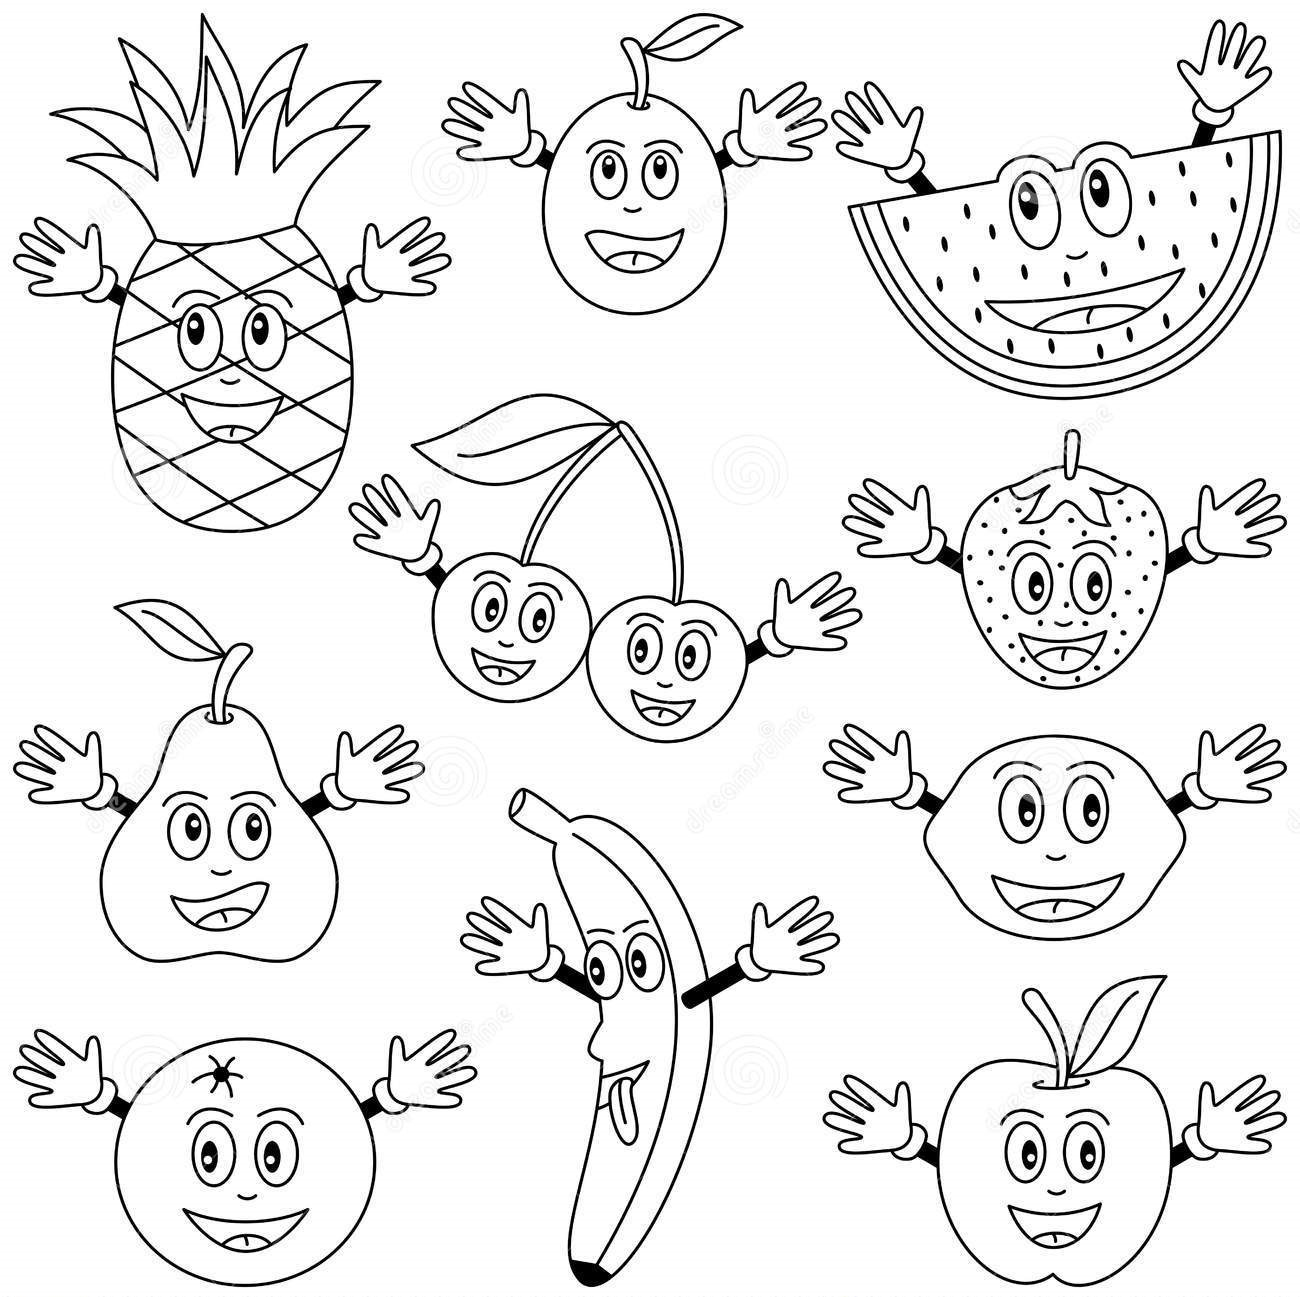 colouring images of fruits fruits and vegetables coloring pages getcoloringpagescom of fruits colouring images